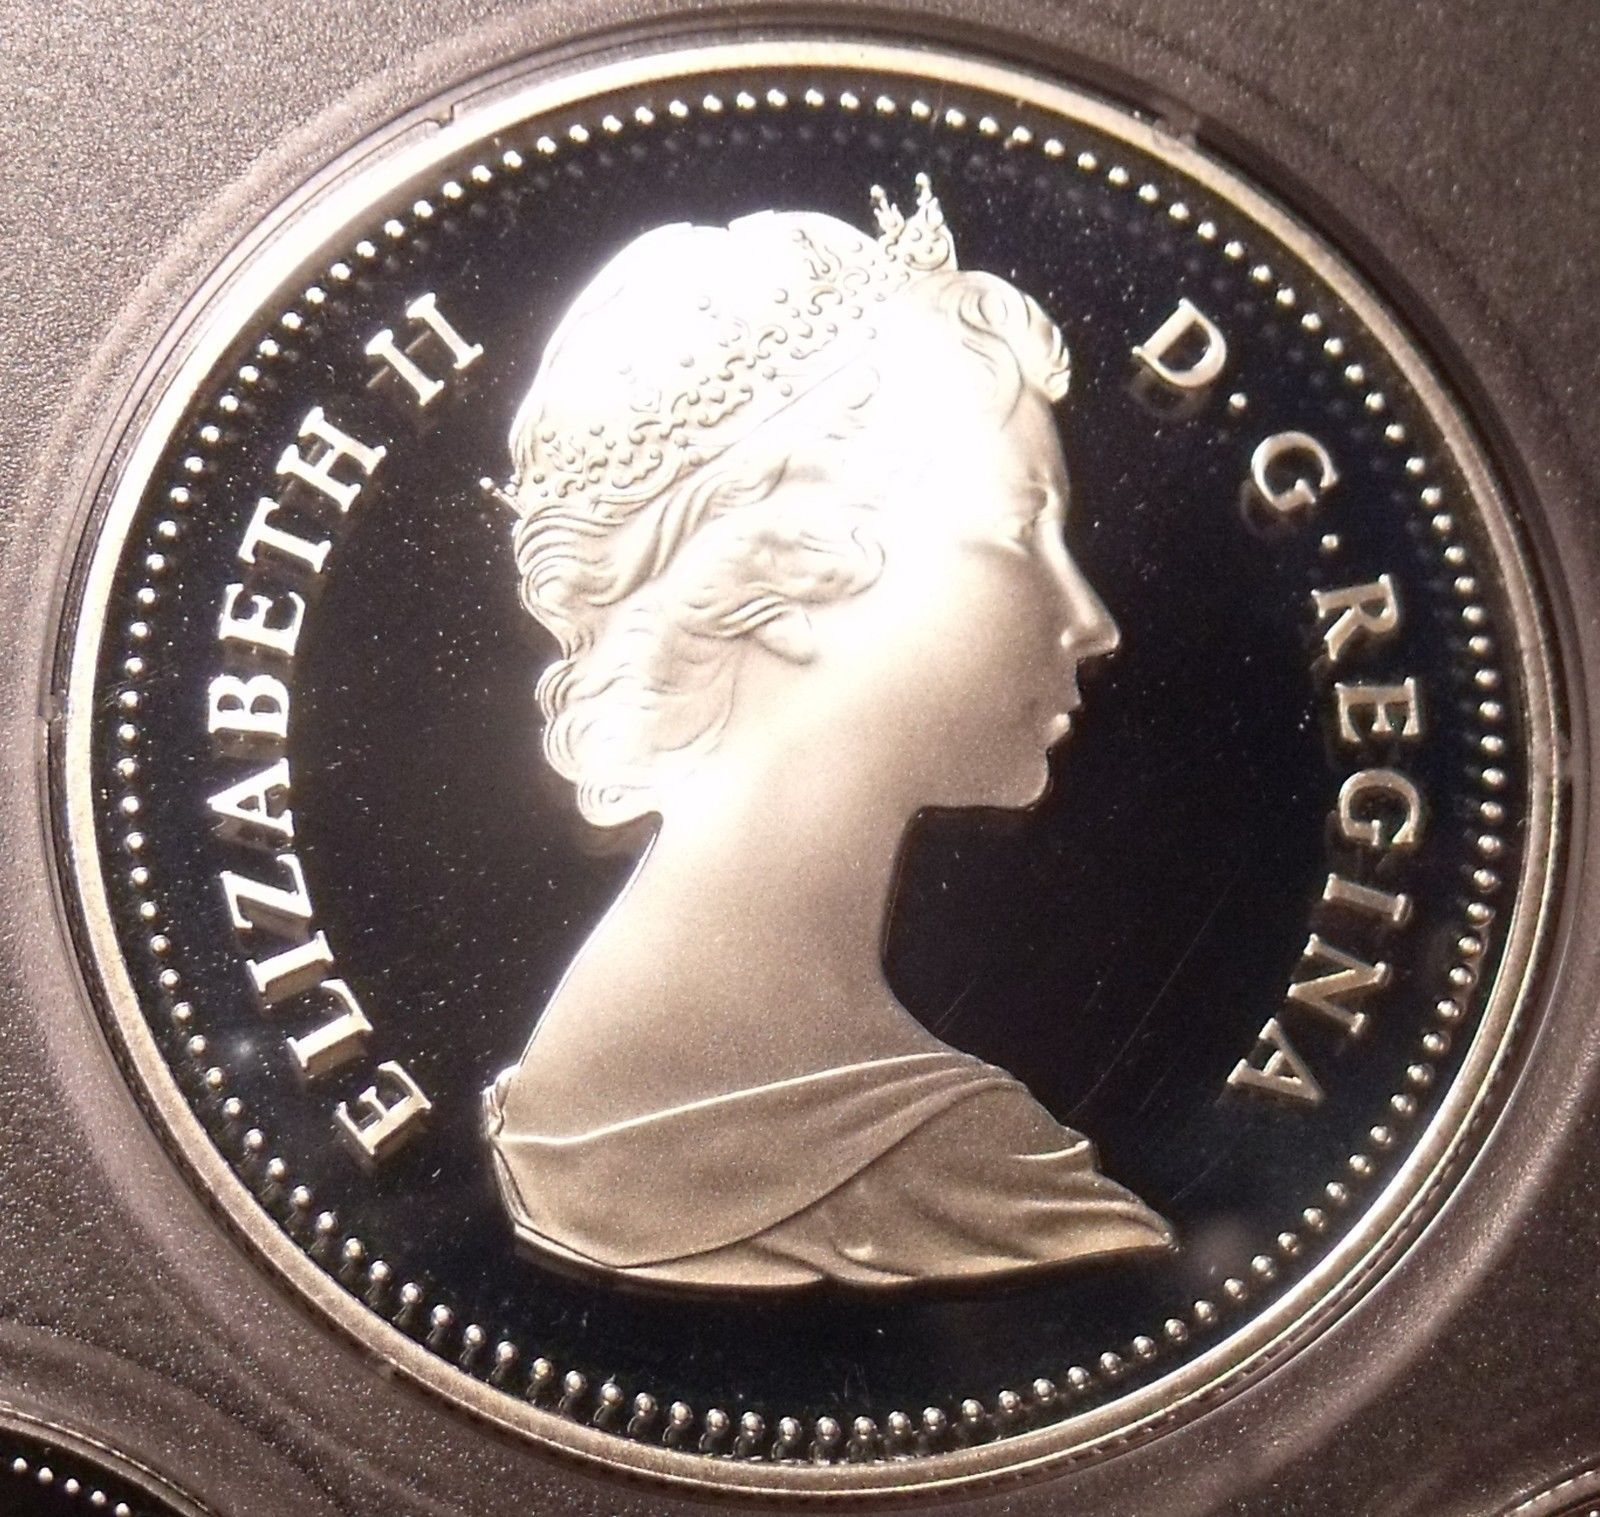 2011 CANADA 5 CENTS PROOF SILVER NICKEL HEAVY CAMEO COIN